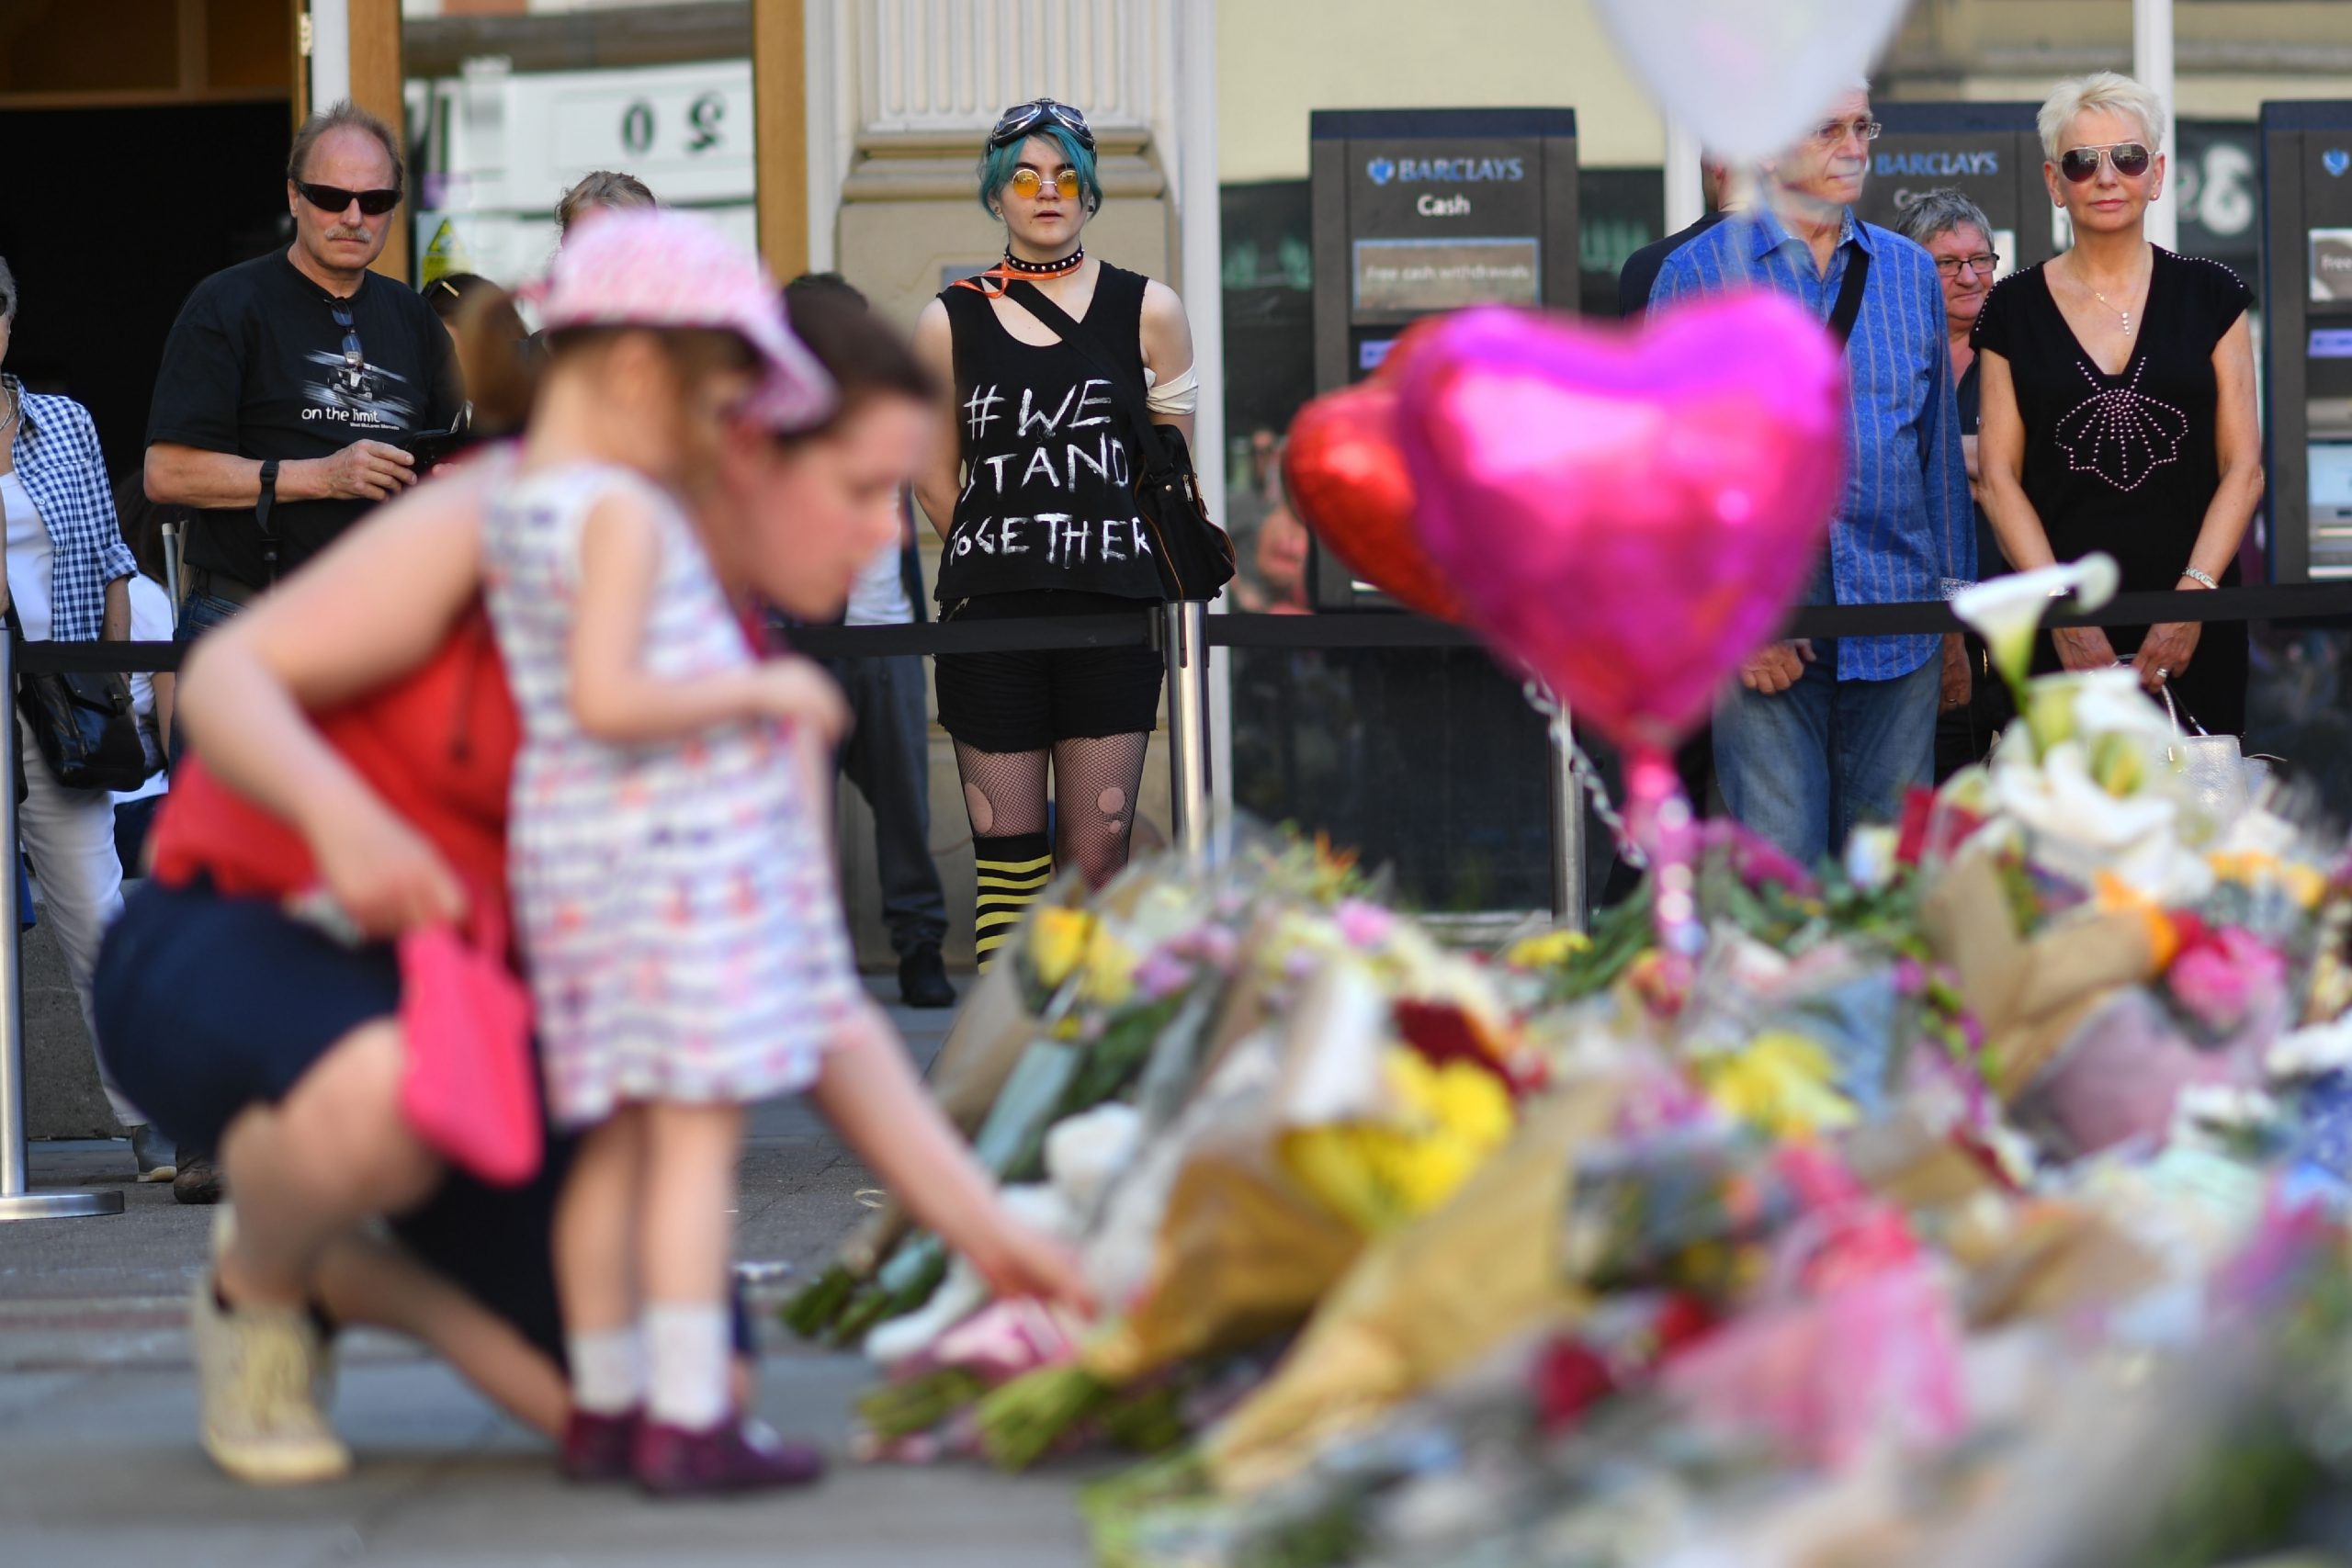 People lay flowers and messages in St Ann's Square in Manchester, England, placed in tribute to the victims of the May 22 terror attack at the Manchester Arena. (BEN STANSALL/AFP/Getty Images)